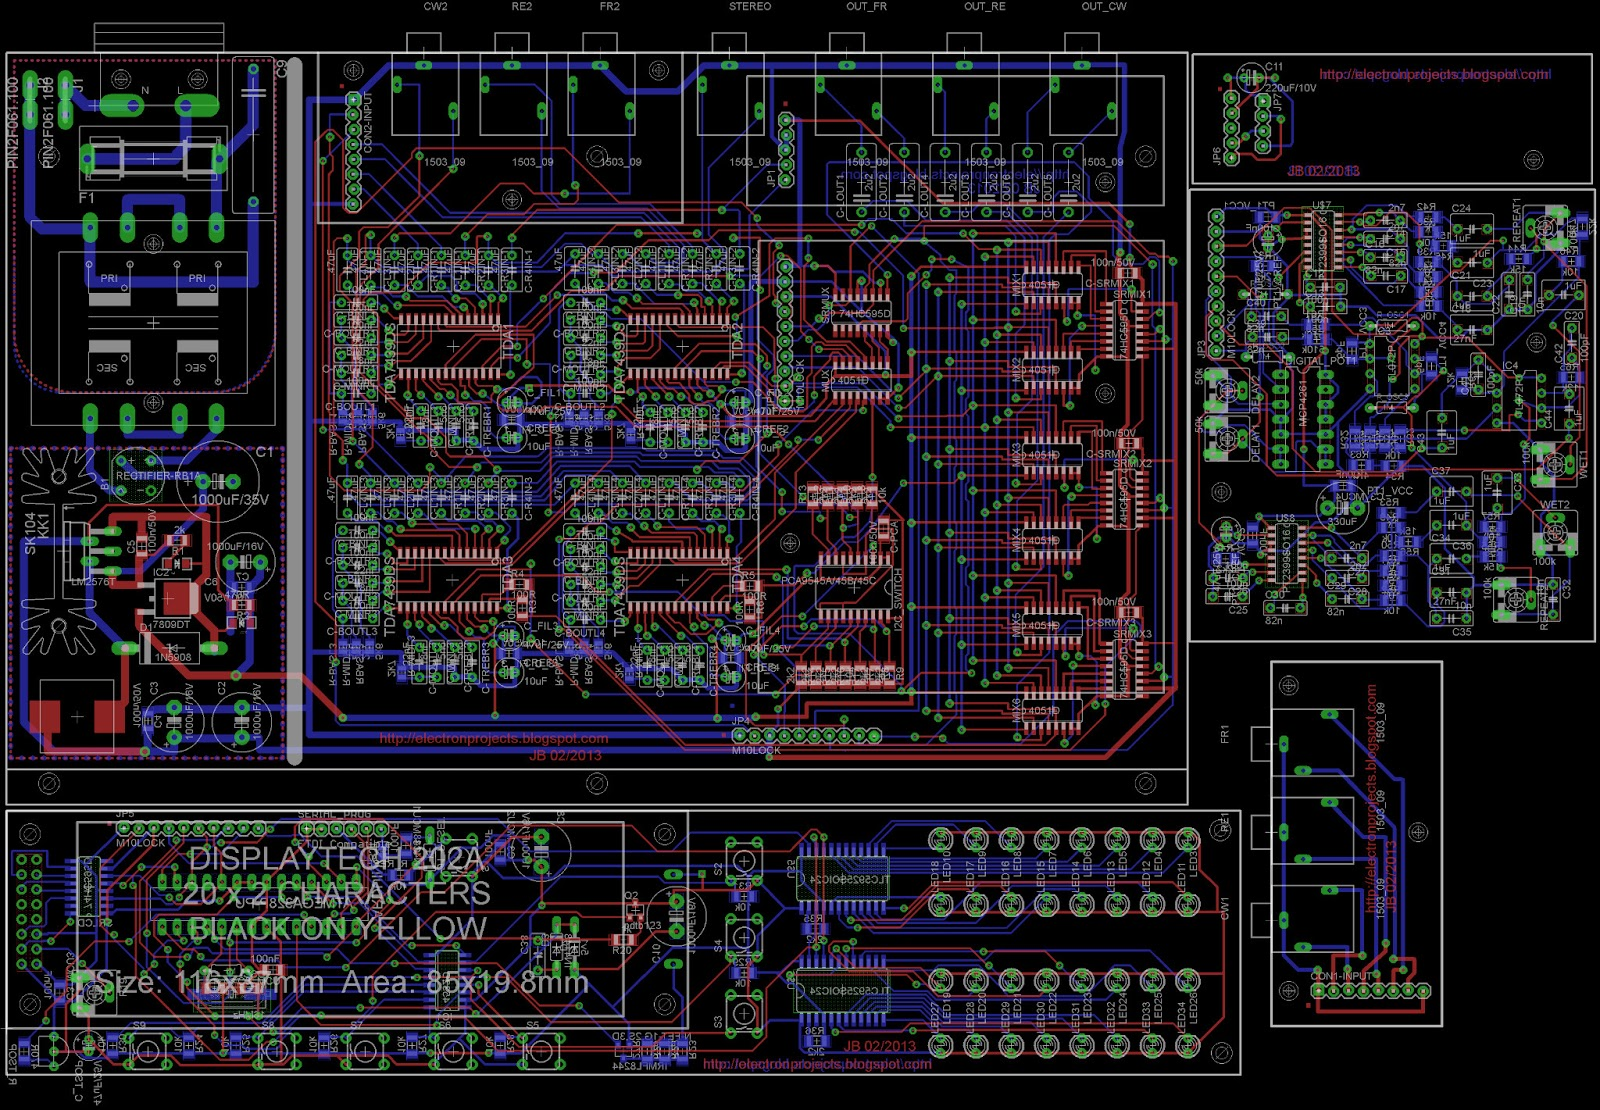 Arduino Audio Mixer Schematic Trusted Schematics Diagram Lm3900 Electronic Projects Tda7439ds Hef4051 5 1 Diy Remote Board